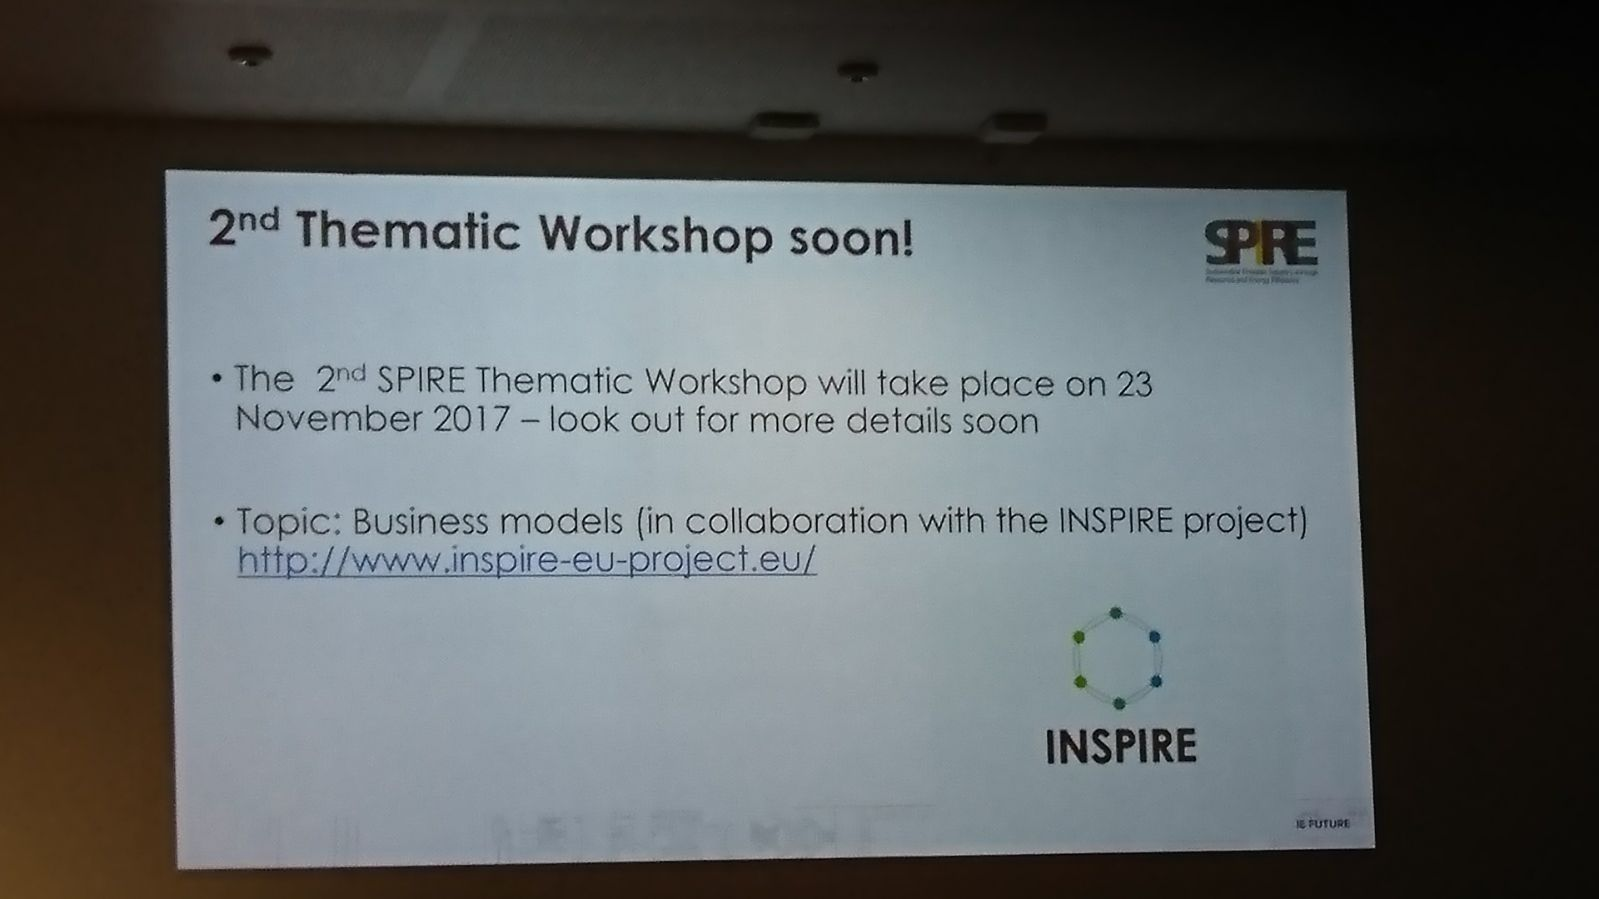 Second thematic INSPIRE workshop